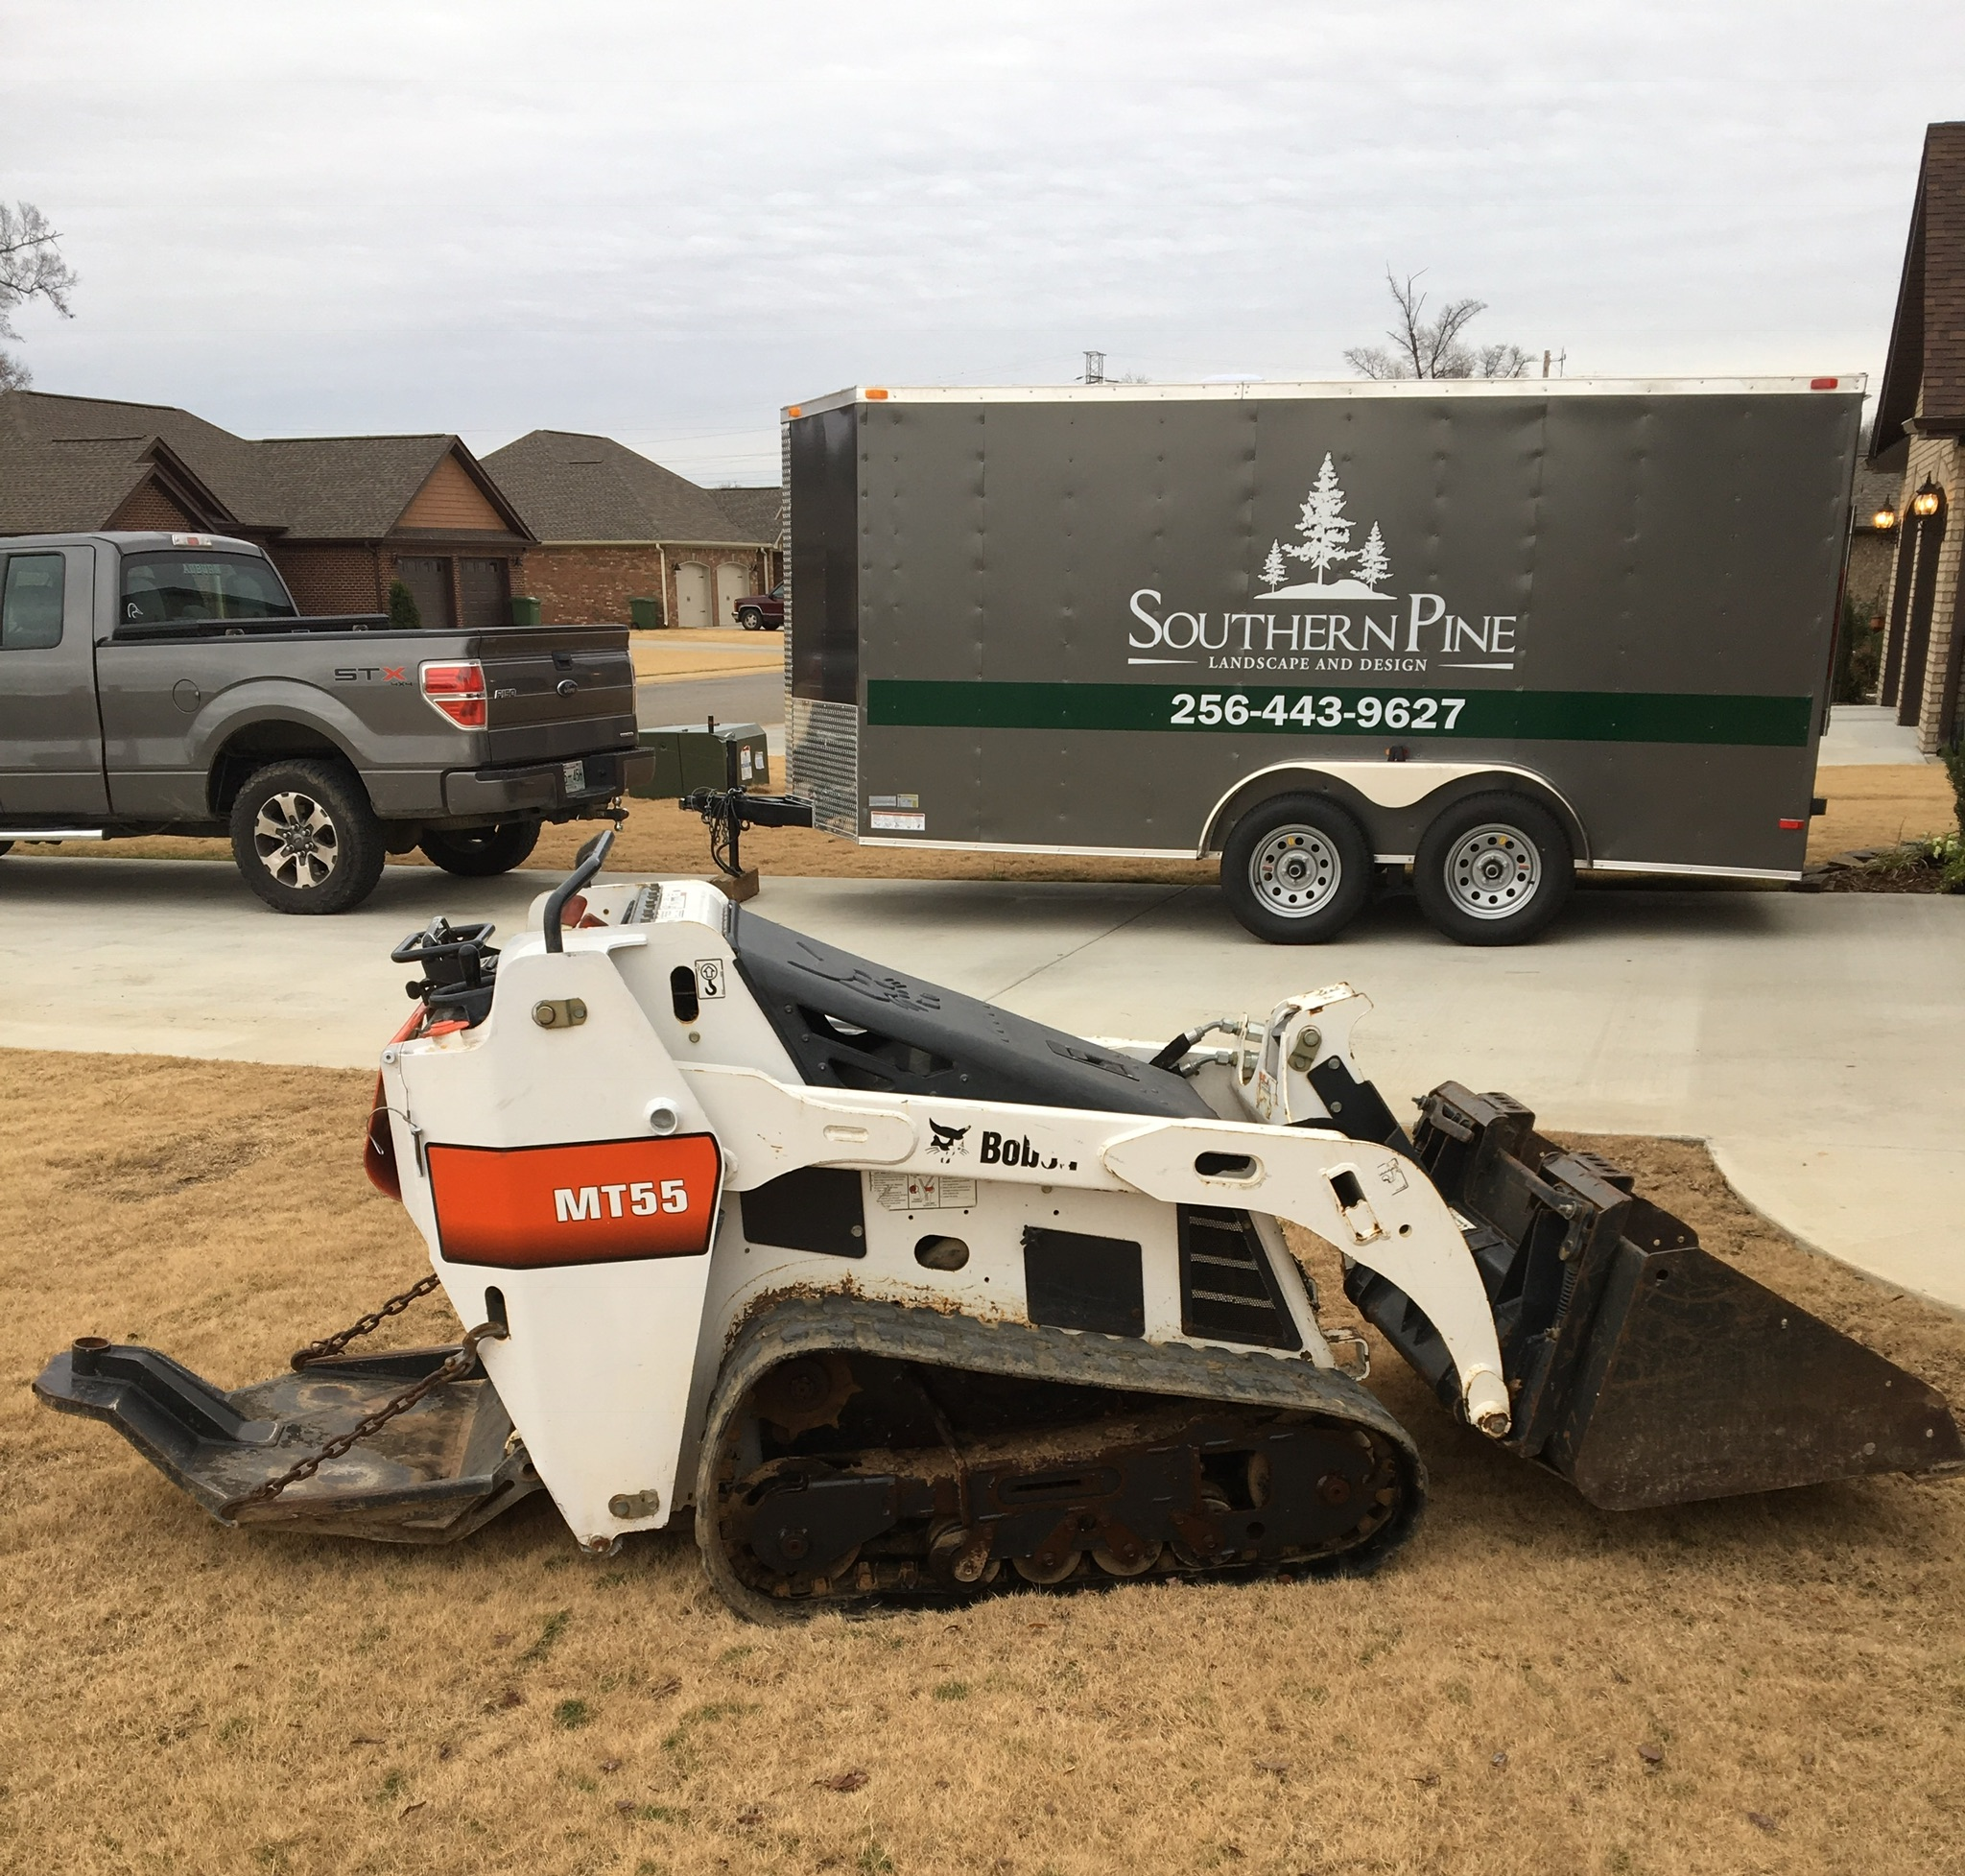 Our promise - You can find landscaping companies anywhere, but none of them can offer the unique level of creativity that we provide at Southern Pine Landscape and Design. We will work with you until you are 100% satisfied with your new lawn.